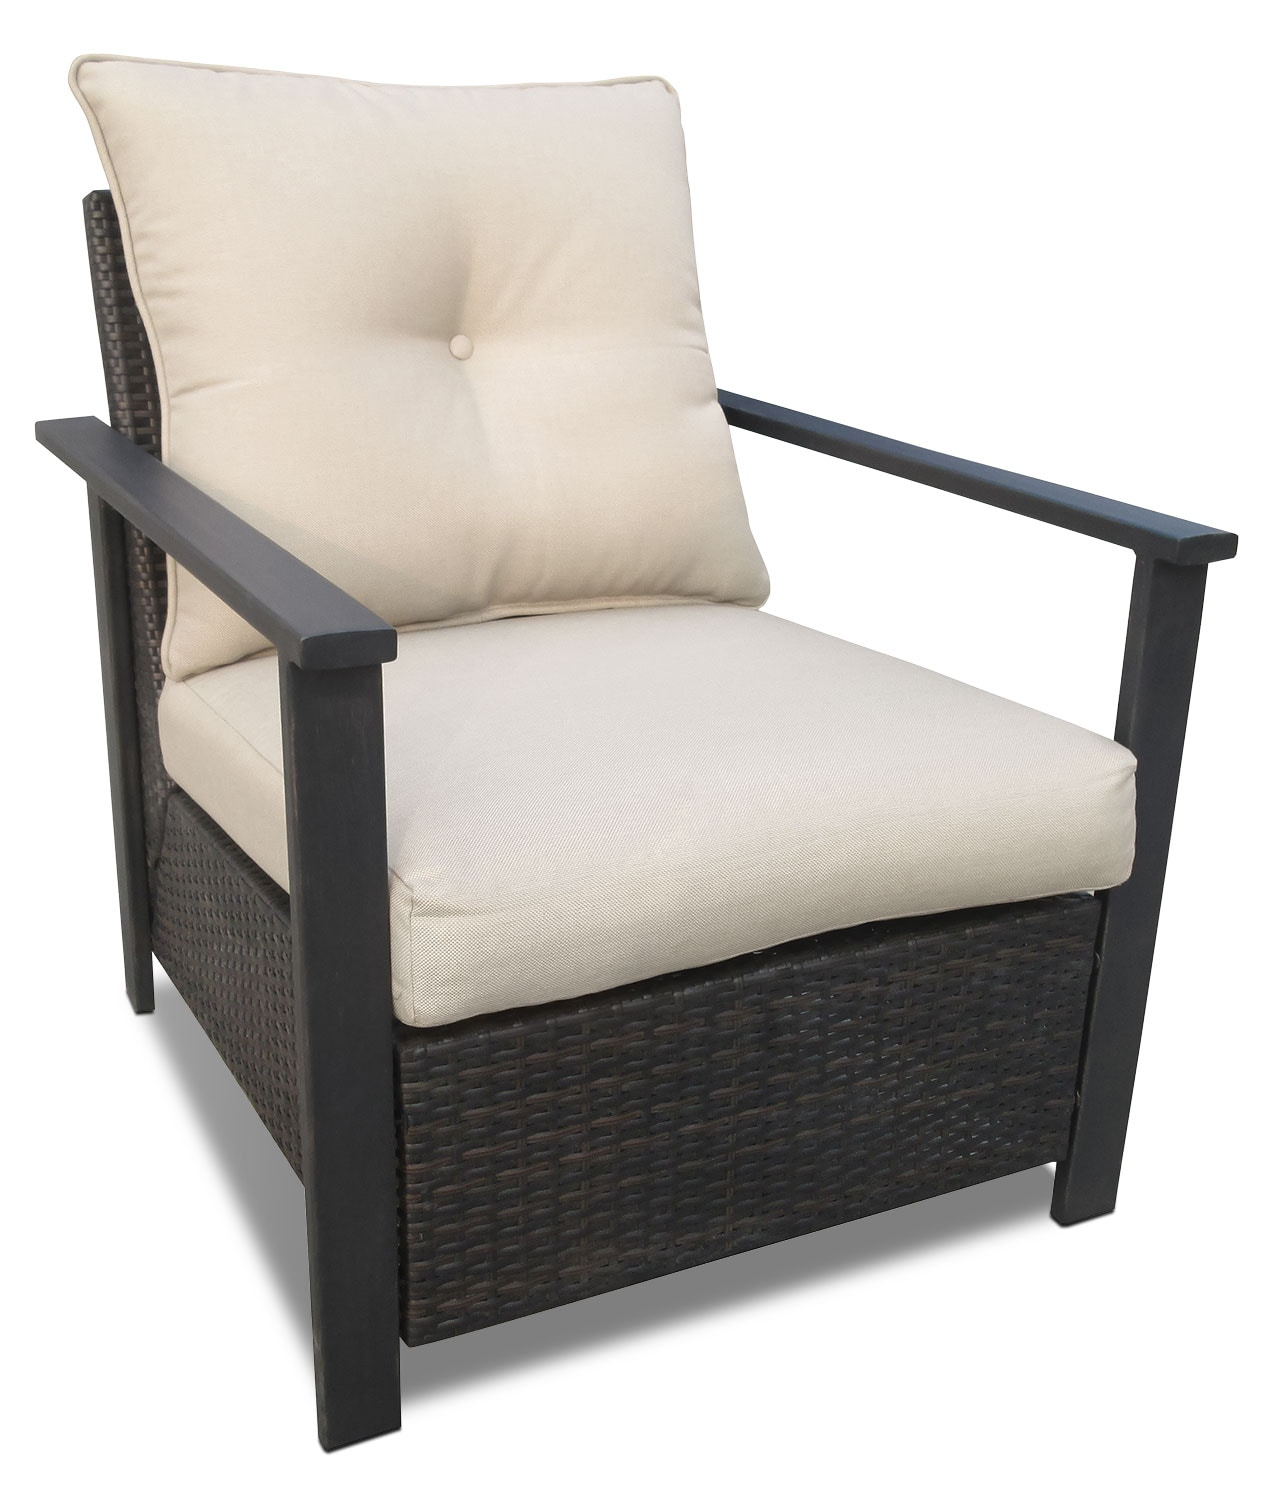 Outdoor Furniture - London Chat Chair